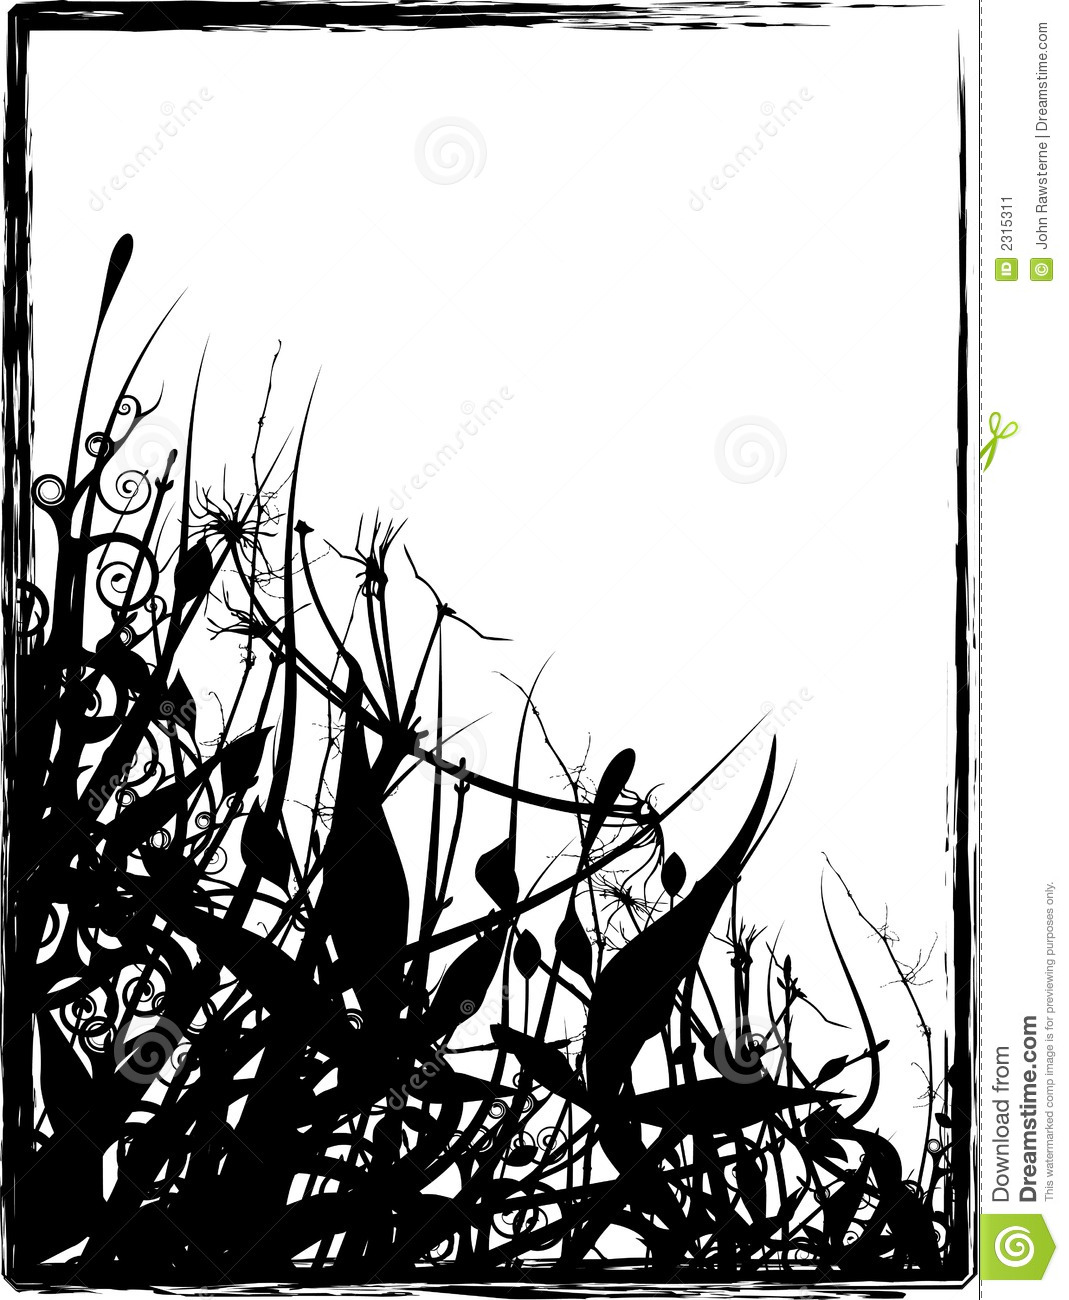 Grungy Organic Frame stock illustration. Illustration of painting ...